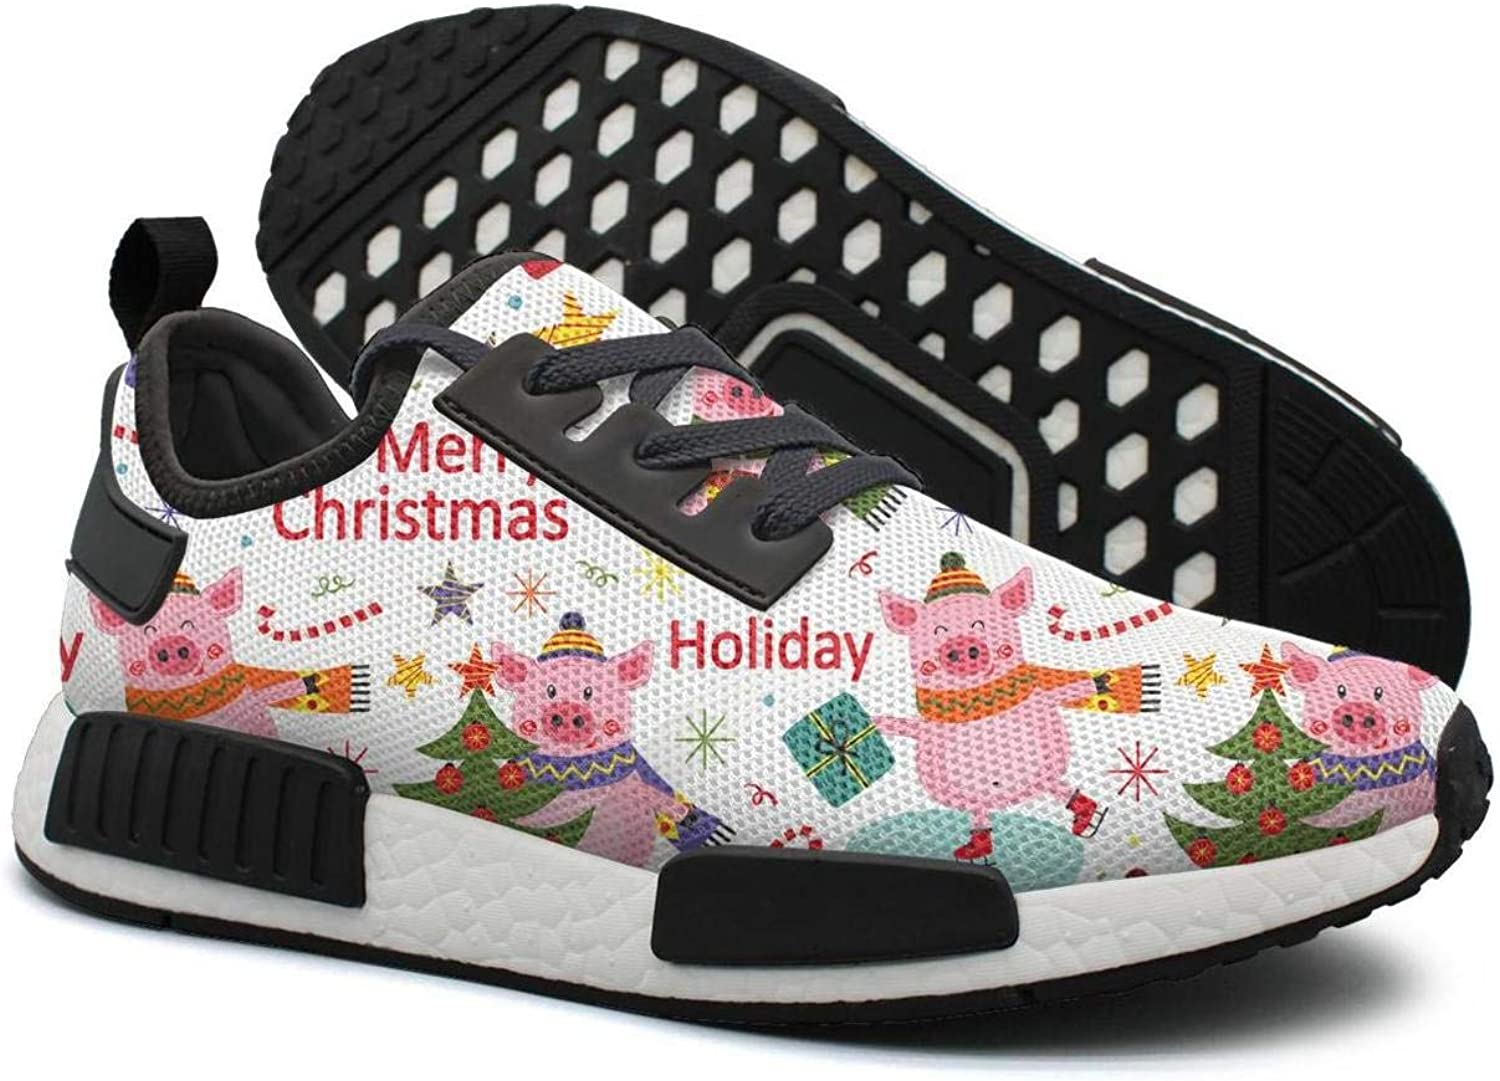 Pduiqo Happy New Year of The Pig Women's Exclusive Lightweight Basketball Sneakers Gym Outdoor Sports shoes